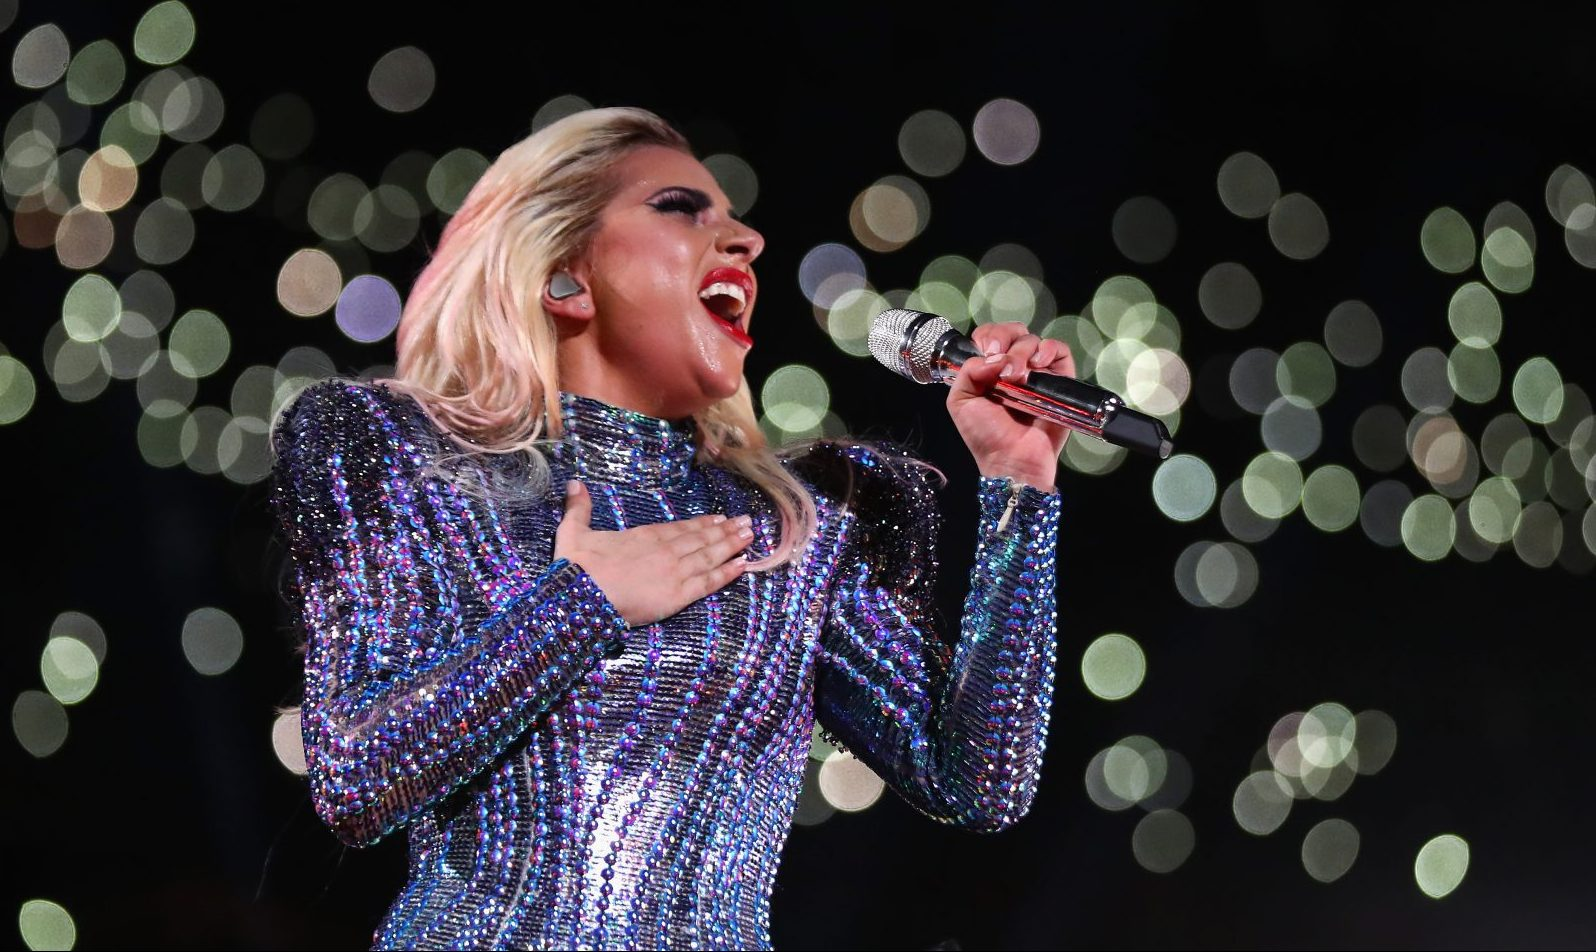 Lady Gaga performs during the Pepsi Zero Sugar Super Bowl 51 Halftime Show at NRG Stadium in Houston. (Getty Images)